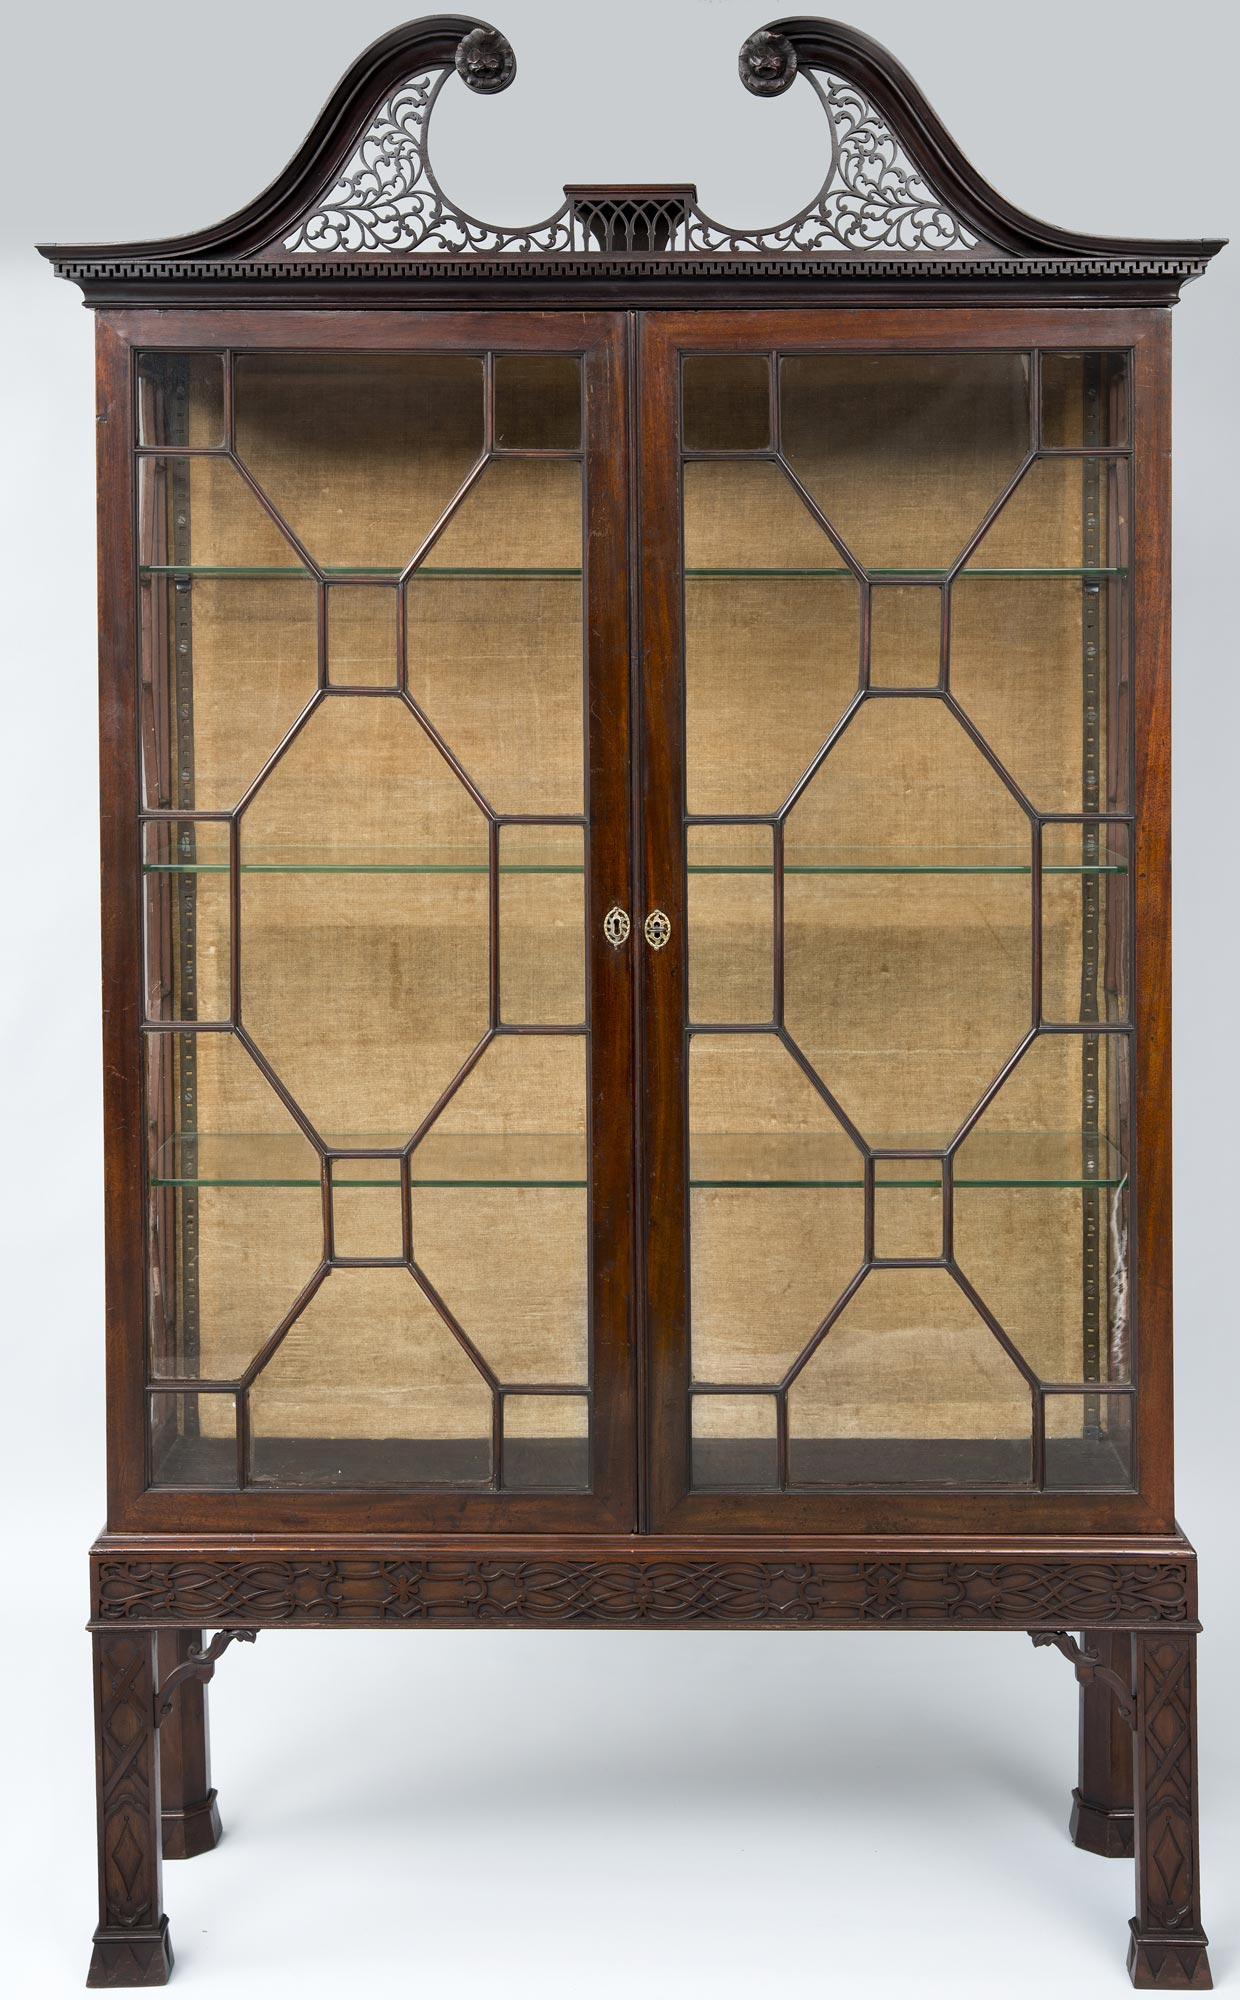 187 Product 187 George Iii Mahogany Glazed Display Cabinet